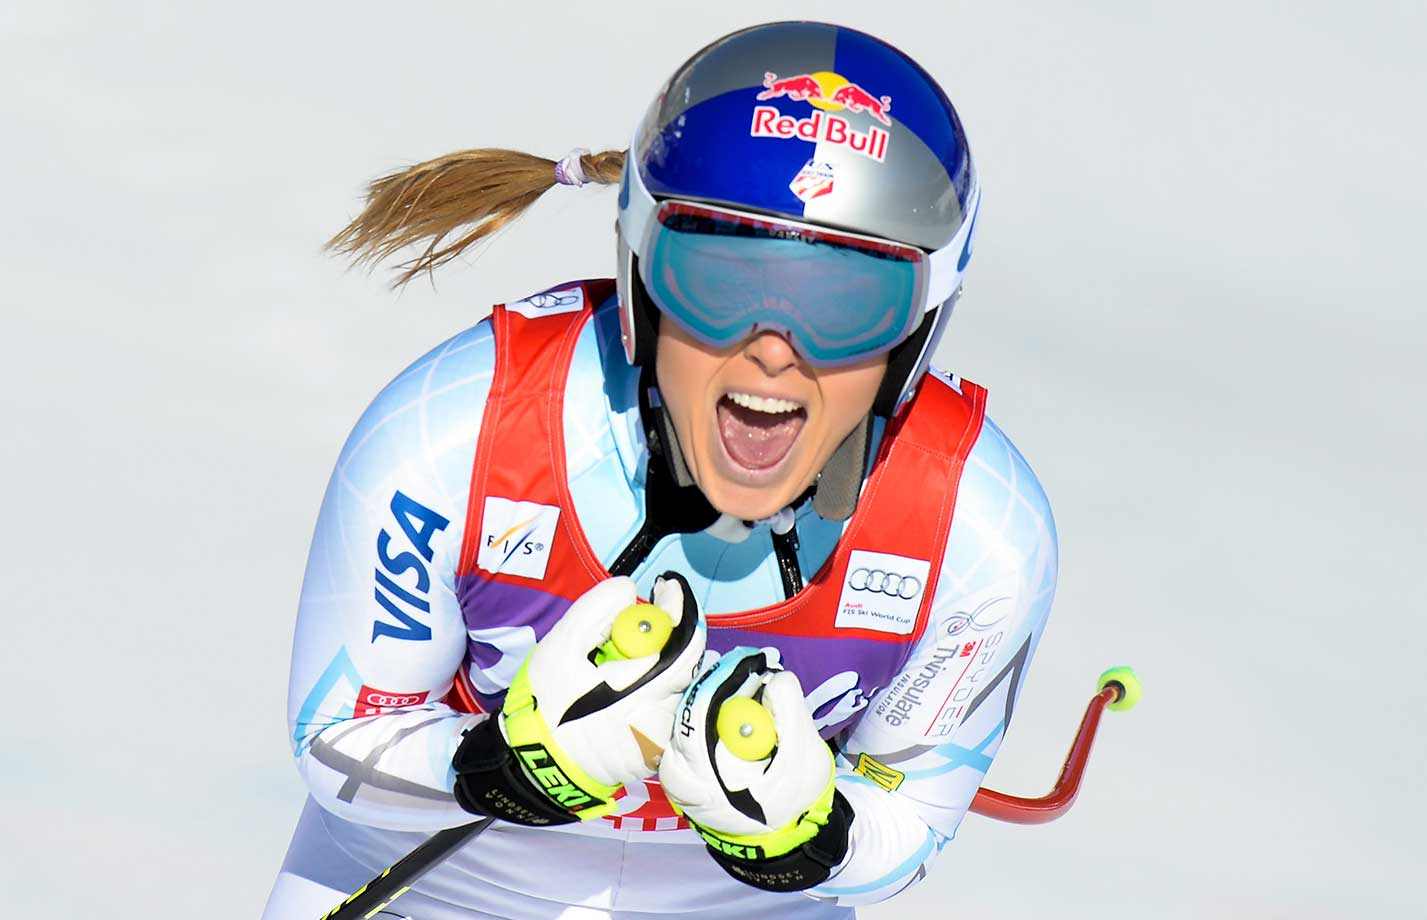 Here are some classic photos of Lindsey Vonn, who set a new record on Jan. 23, 2016, with her 37th career World Cup downhill win in an event held at Cortina d'Ampezzo, Italy. Vonn broke Annemarie Moser-Proell's record, which had stood since 1980.